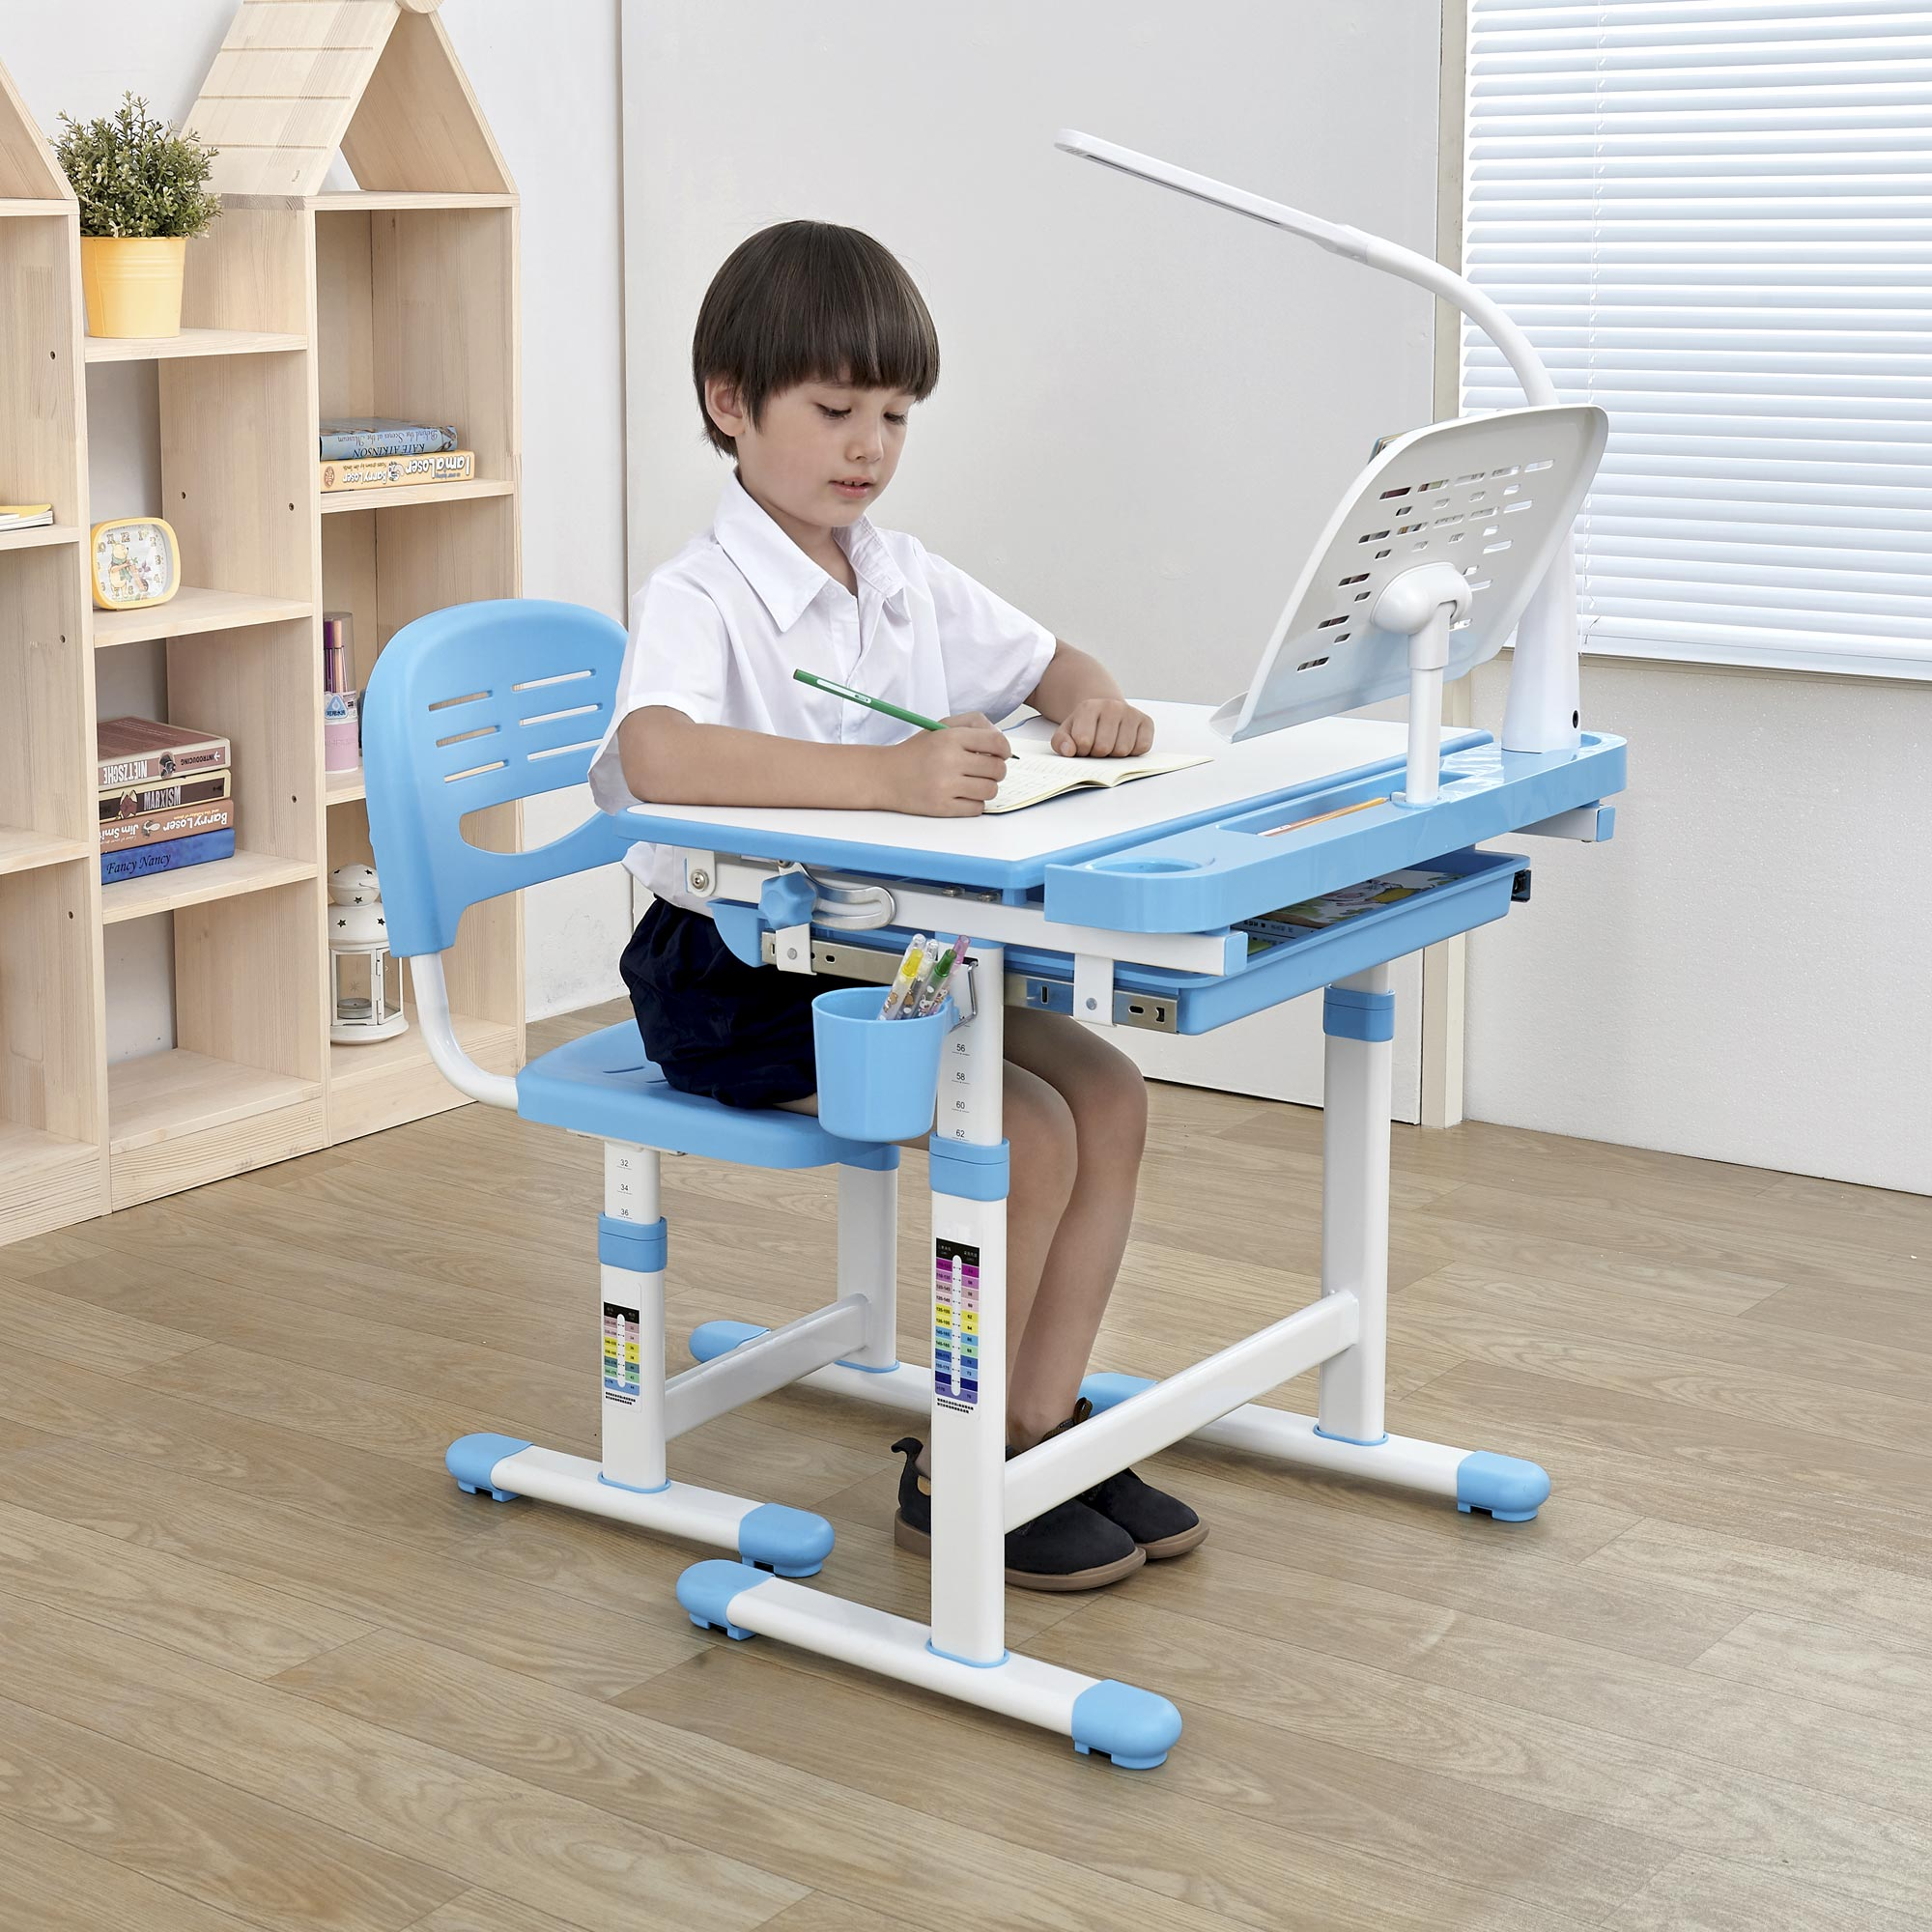 height-adjustable-kids-study-desk-chair-ergonomic-kids-table-Midi-blue-desk-for-boys-1